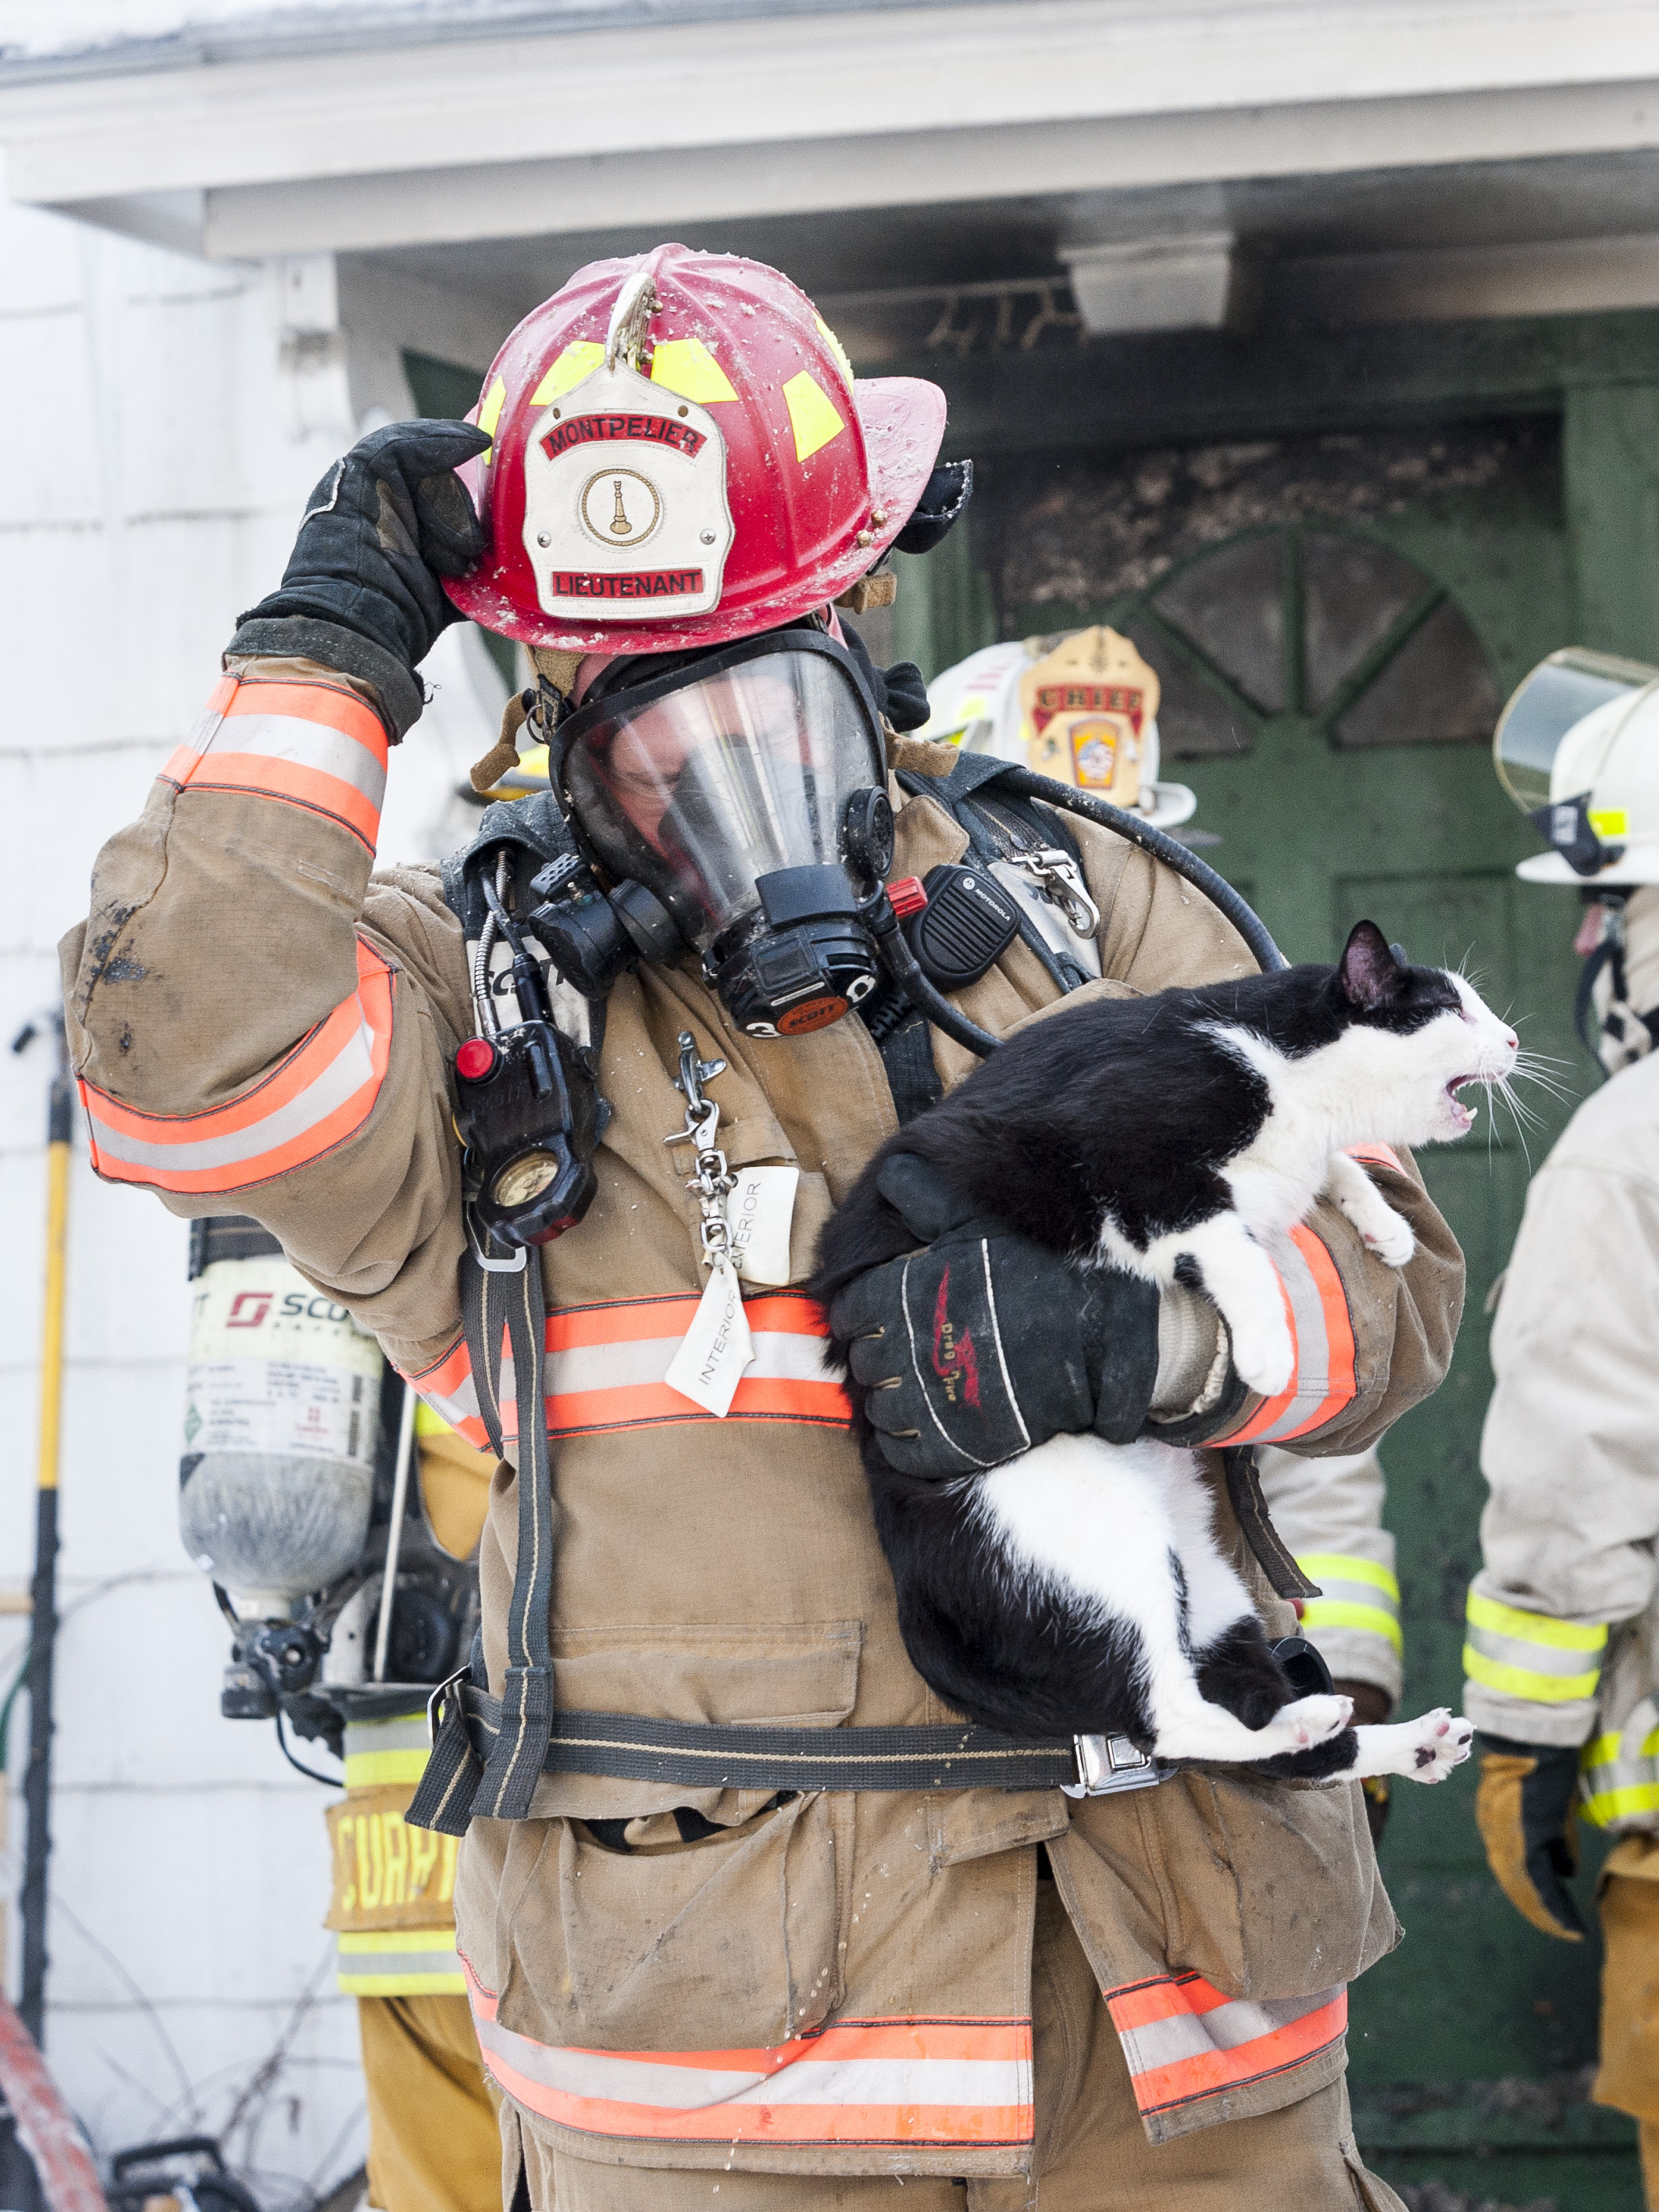 A Montpelier firefighter emerges from a house fire on Main Street with a frightened cat on Tuesday, January 2nd 2018. All tenants were evacuated safely but several pets did not survive.